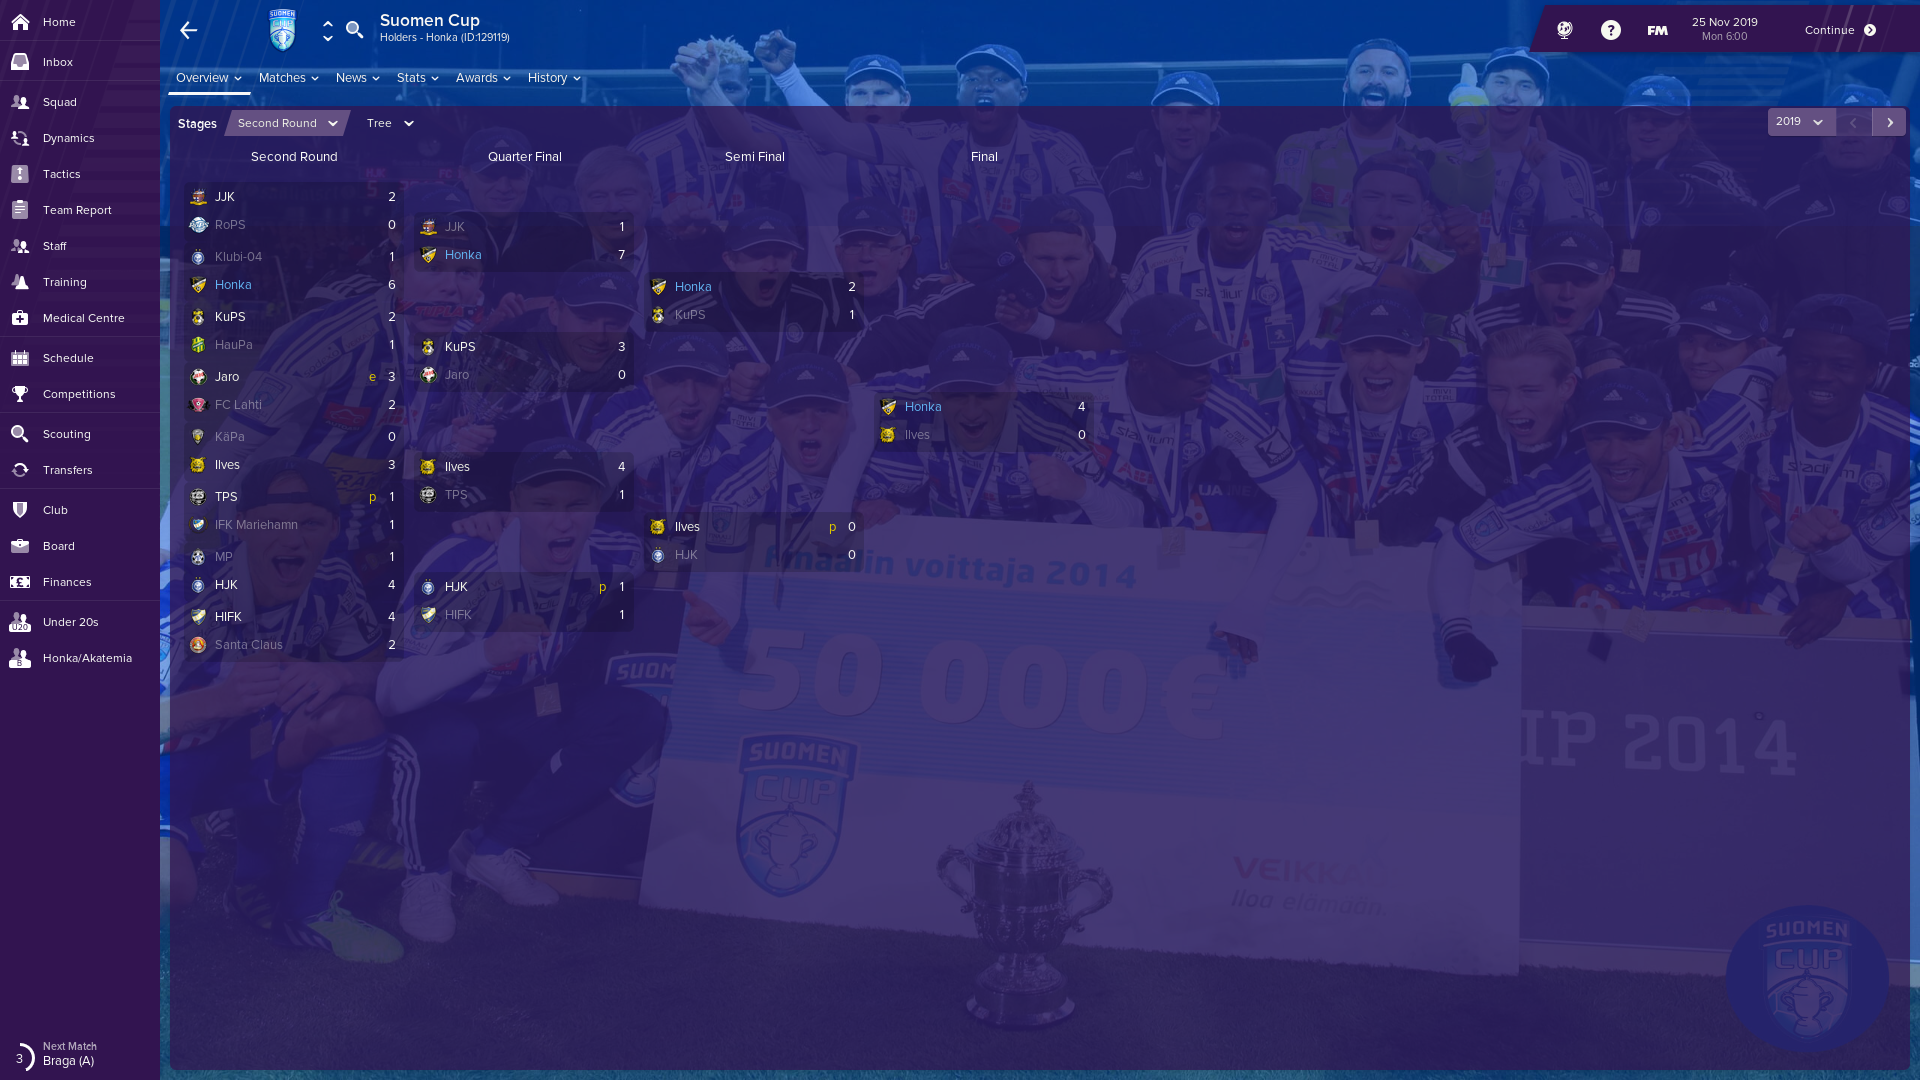 https://i.ibb.co/nrnr6GL/Cup-Winners.png